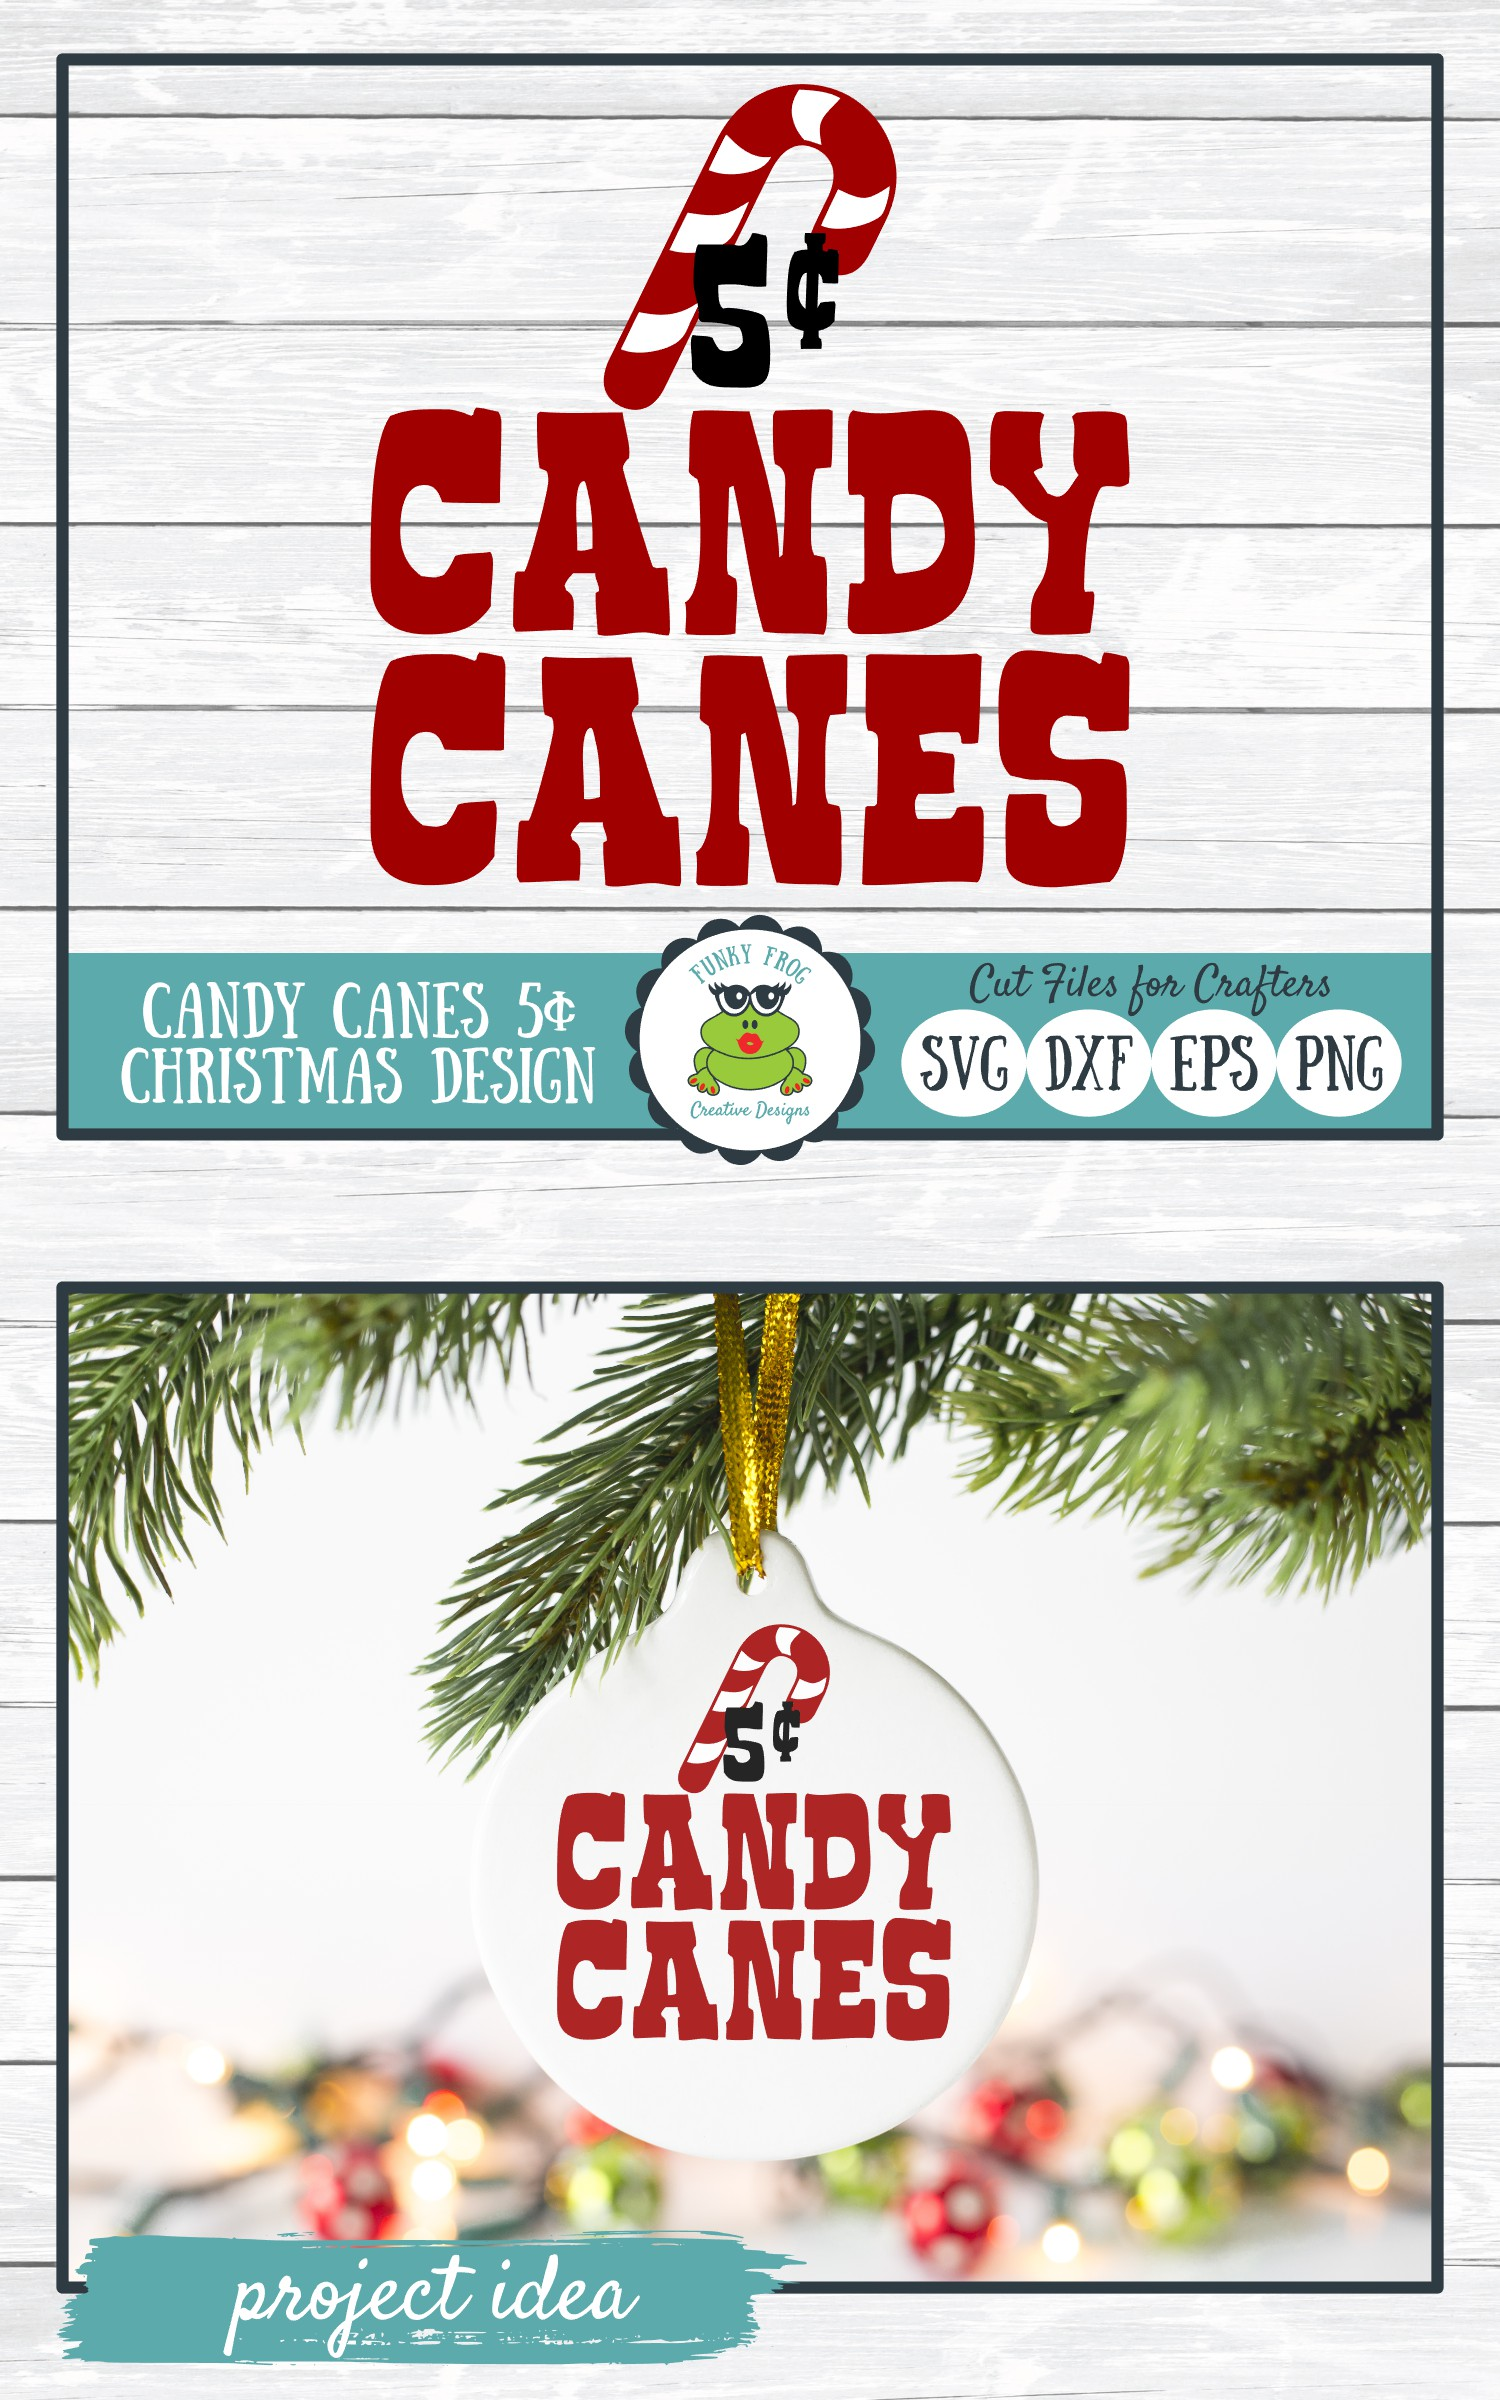 Candy Canes 5 Cents, Christmas Winter Holiday SVG Cut File example image 4